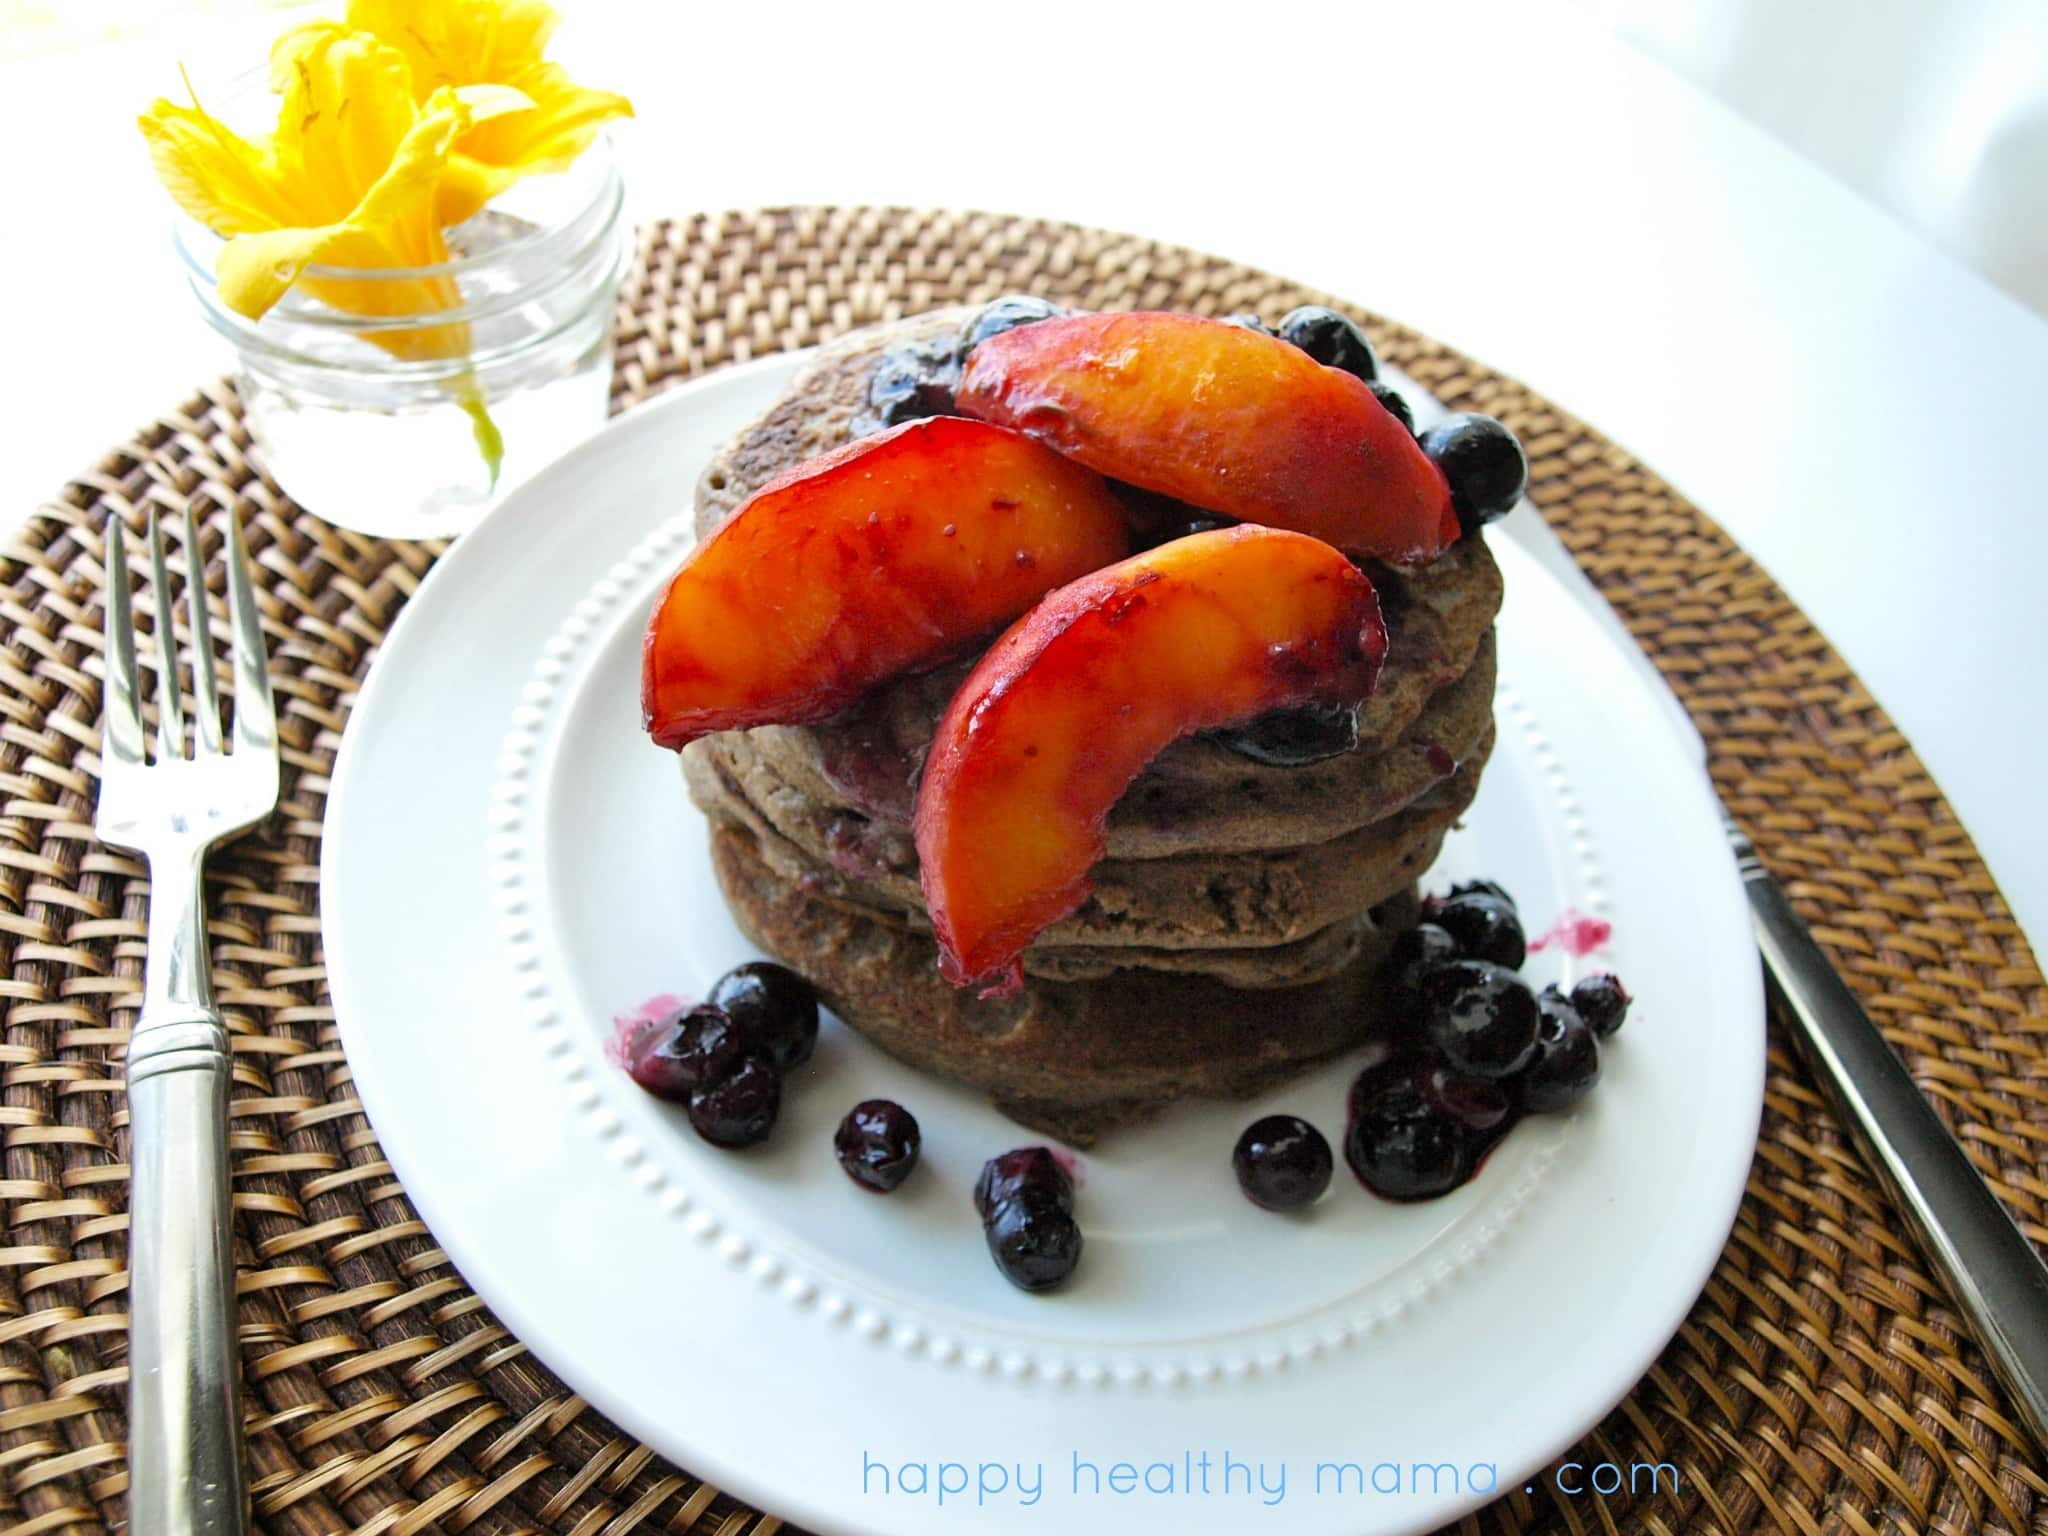 Buckwheat pancakes with roasted peaches and blueberries {gluten free, grain free, dairy free}